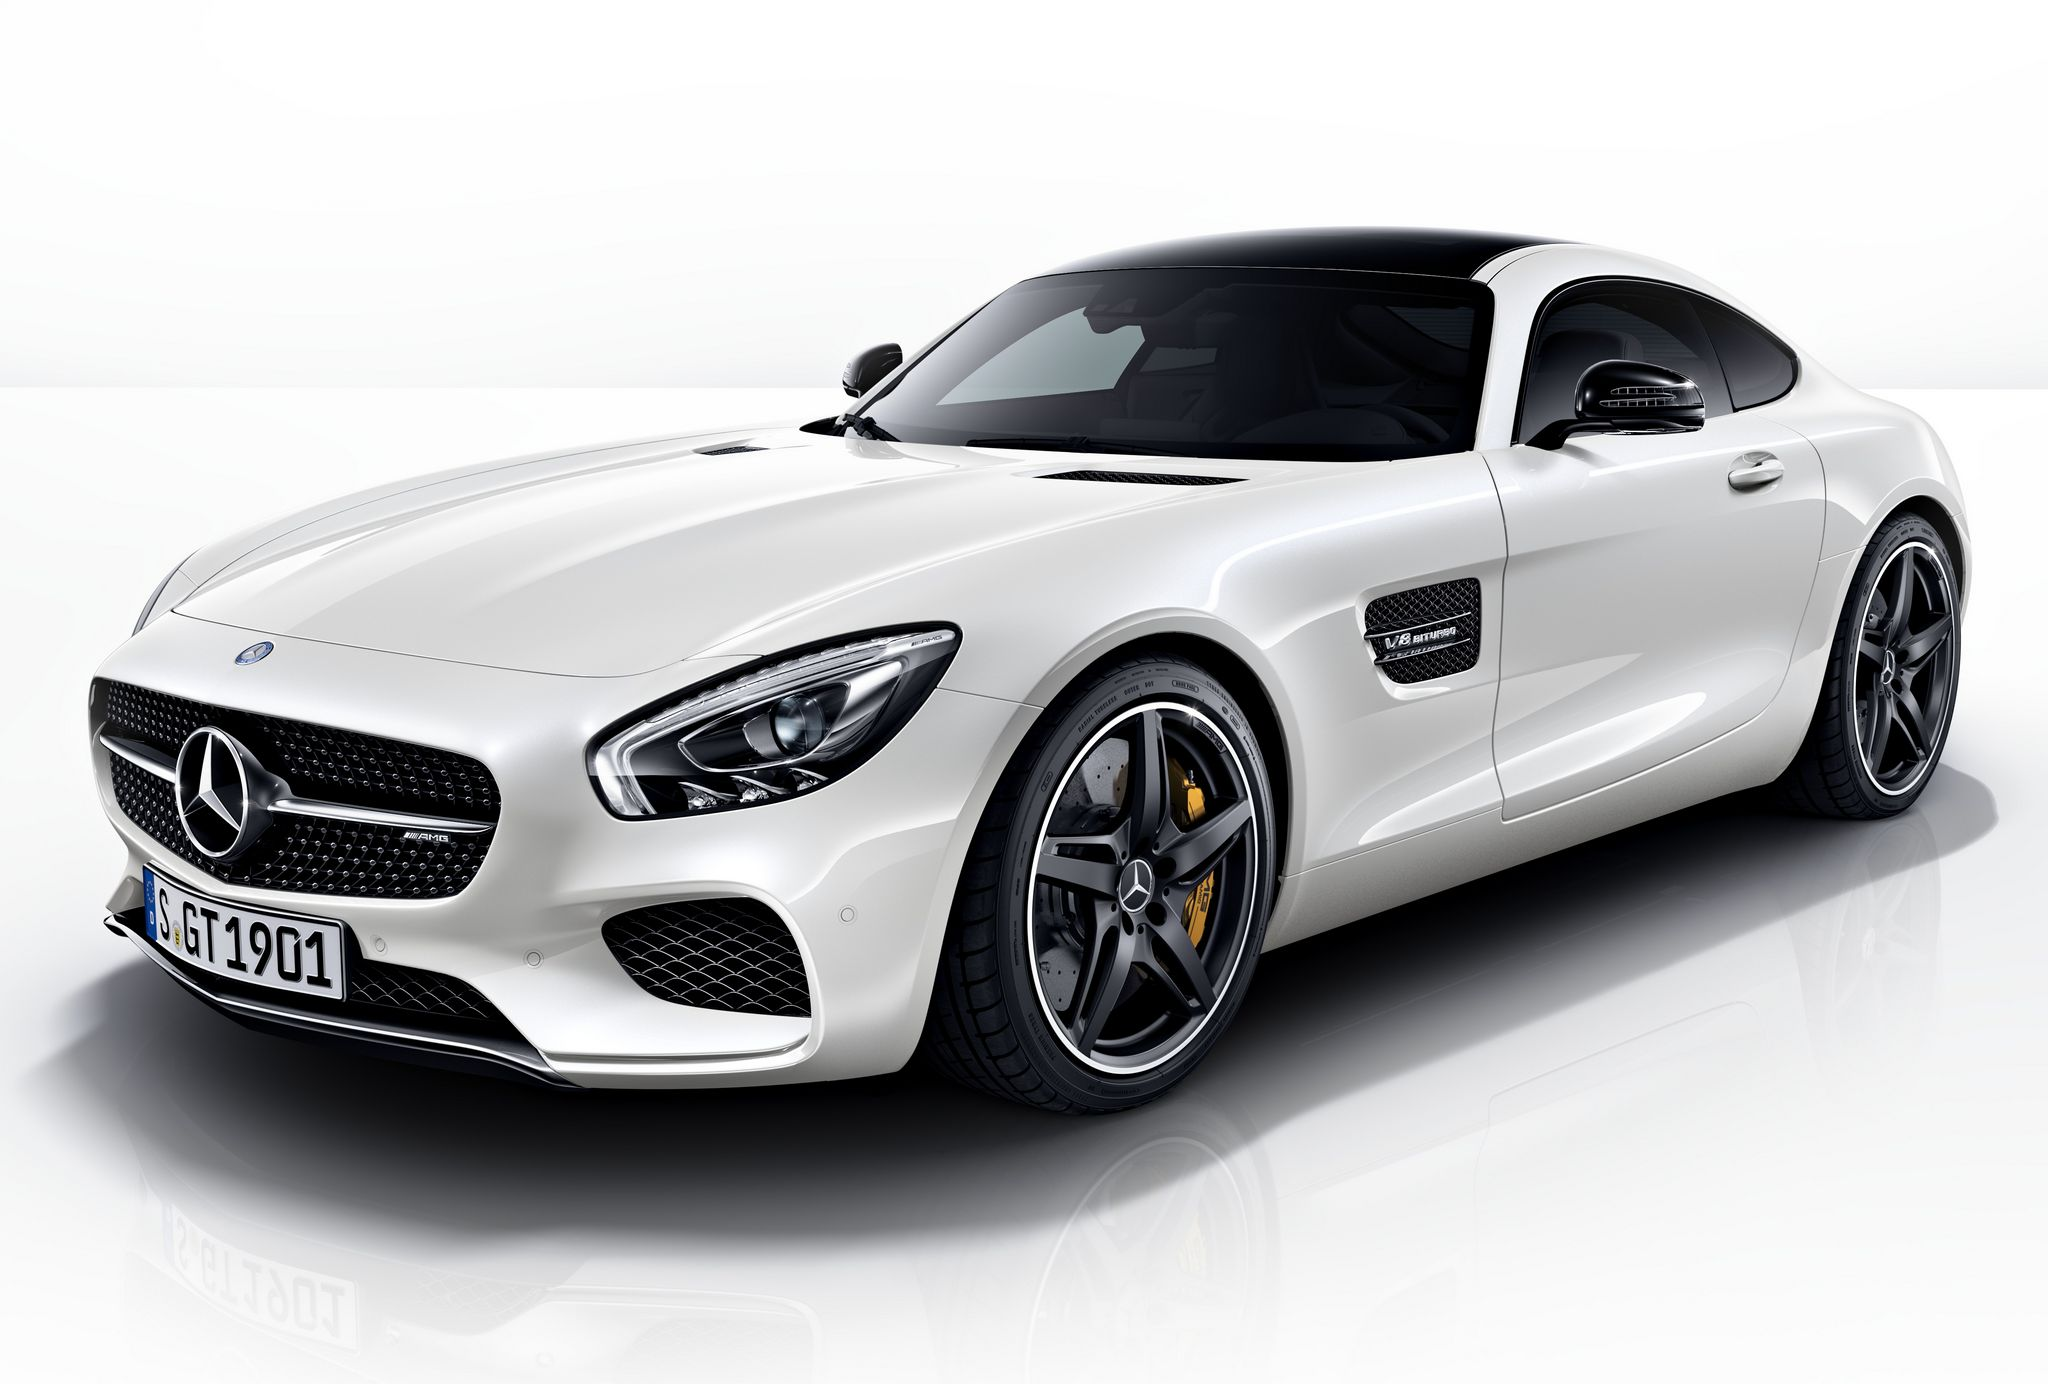 der mercedes amg gt startet bei eur mbpkw. Black Bedroom Furniture Sets. Home Design Ideas